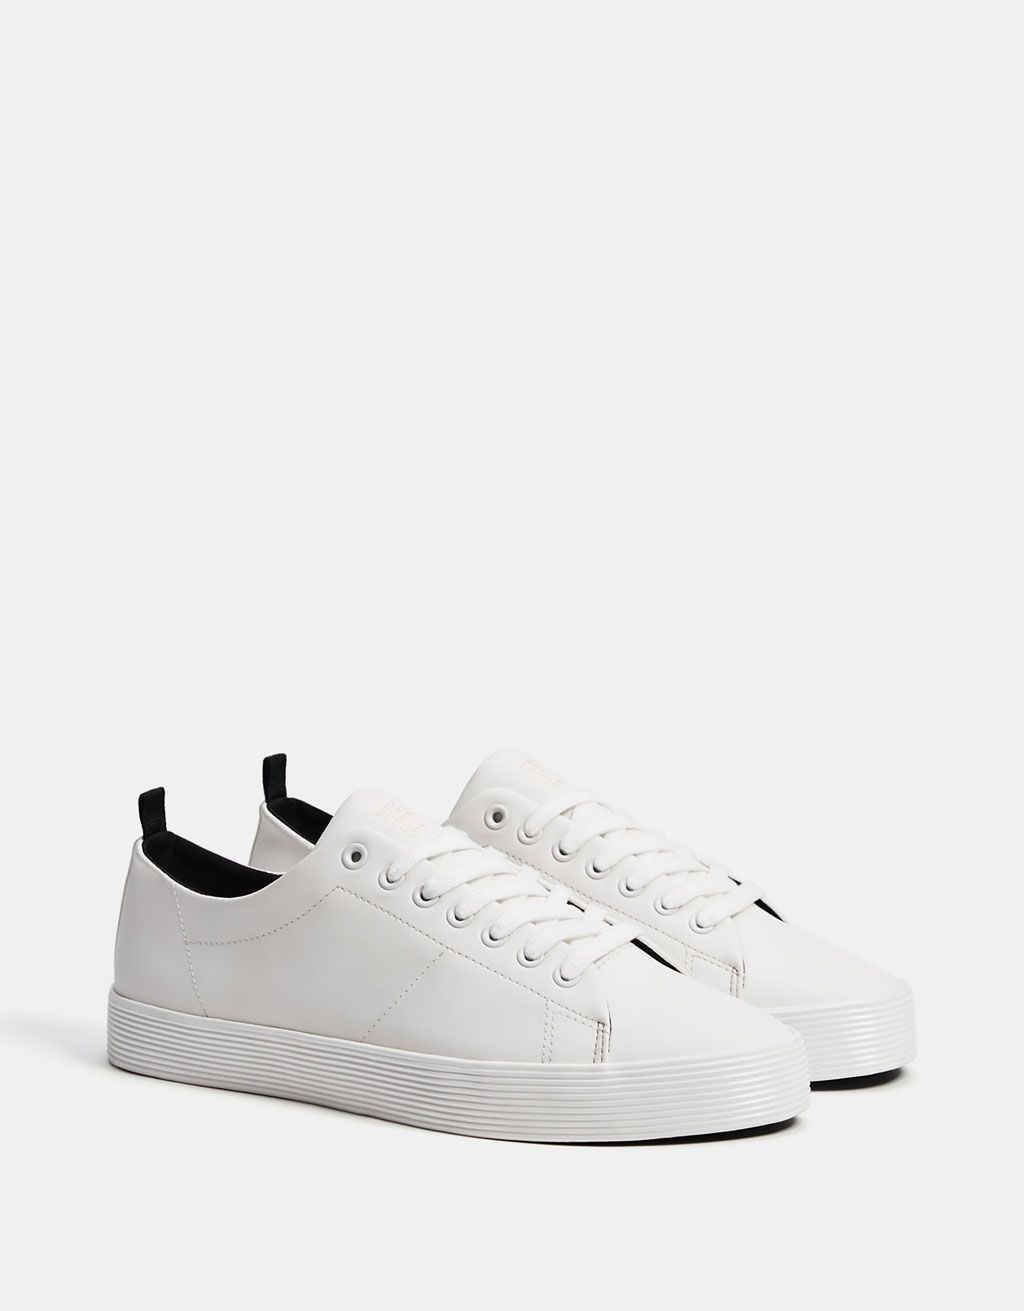 Men s monochrome sneakers with textured soles - SHOES - Bershka United  States 575eefd3d909